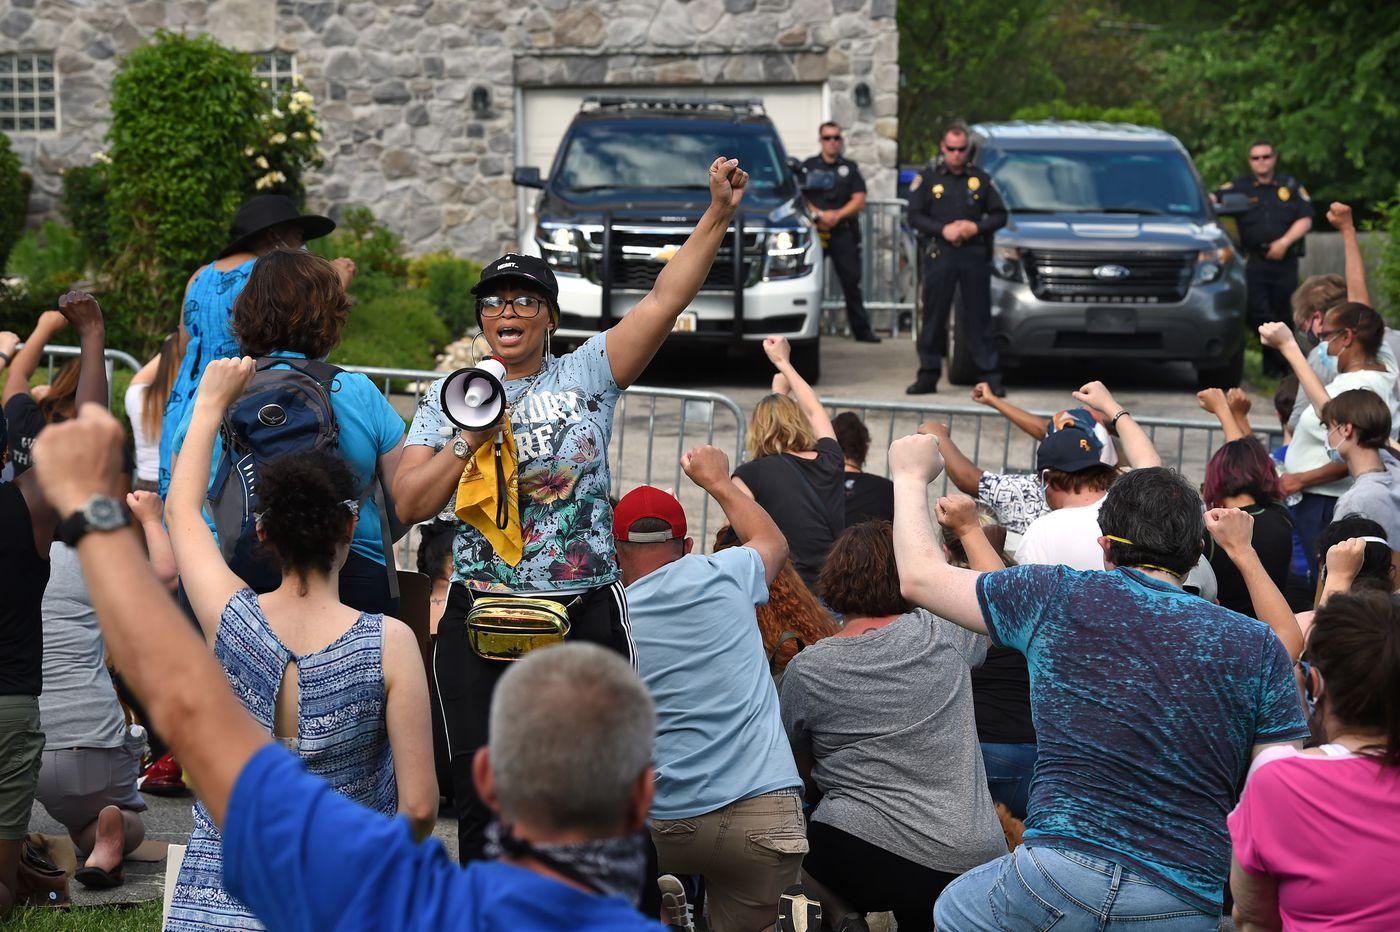 Protesters converge on Montco official Joe Gale's home for calling BLM a 'hate' group